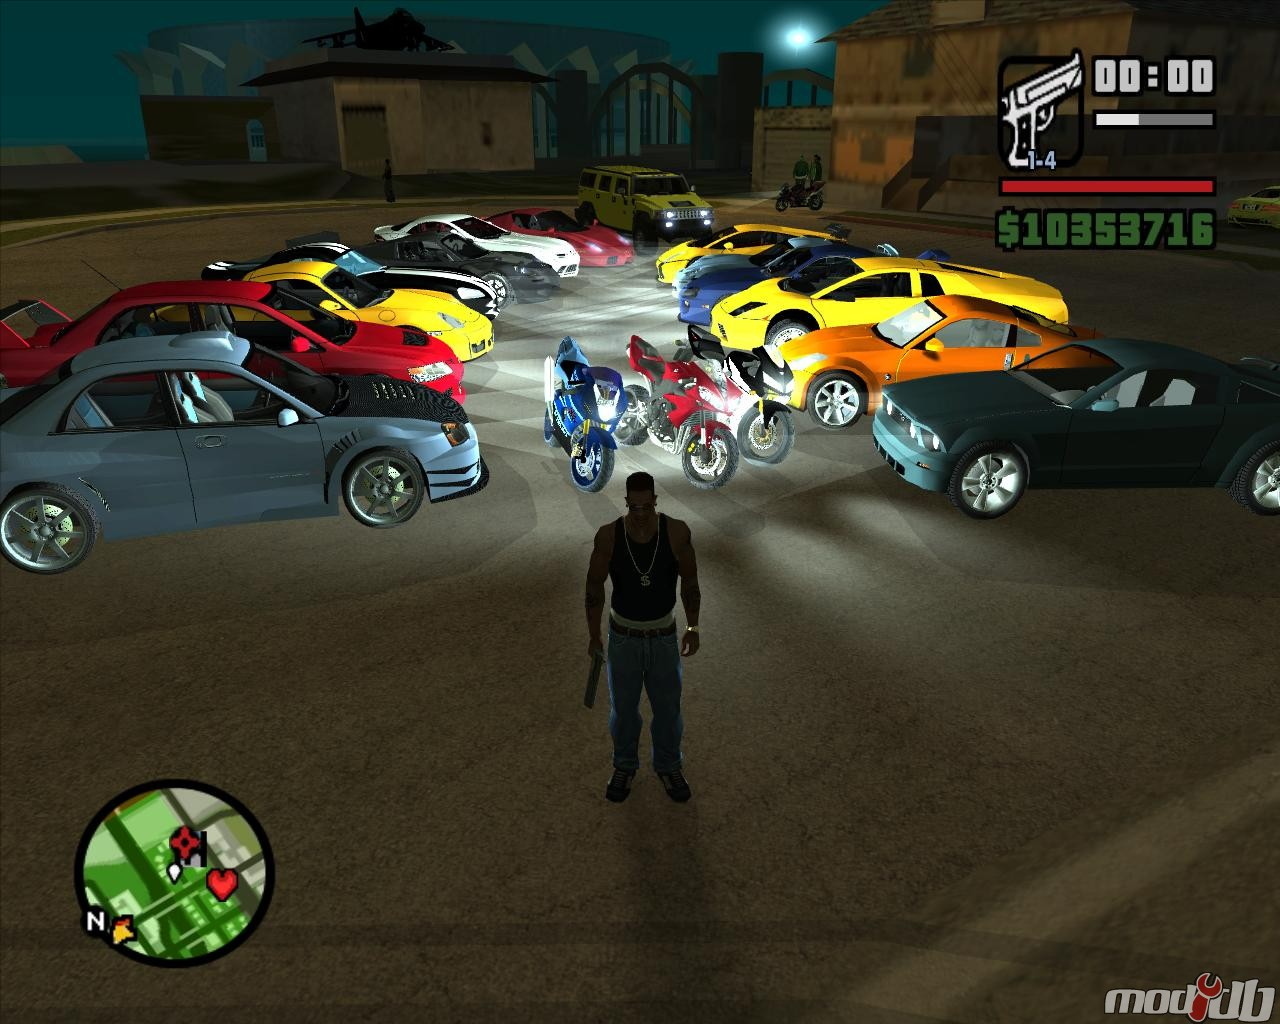 Various cars in the mod image - gt mod mod for grand theft auto: san